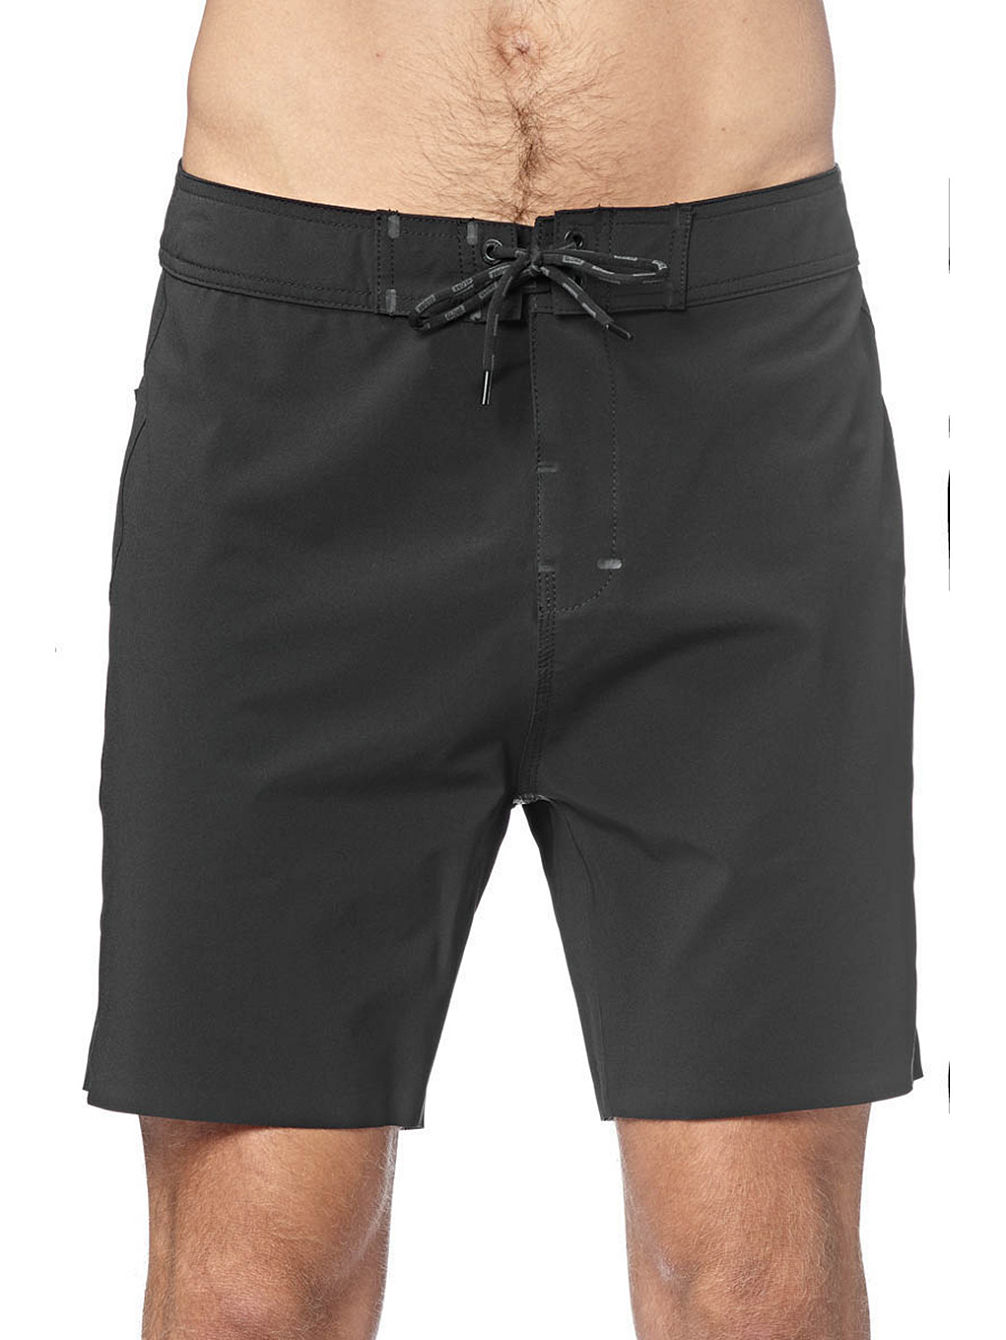 Dion Eclipse Boardshorts